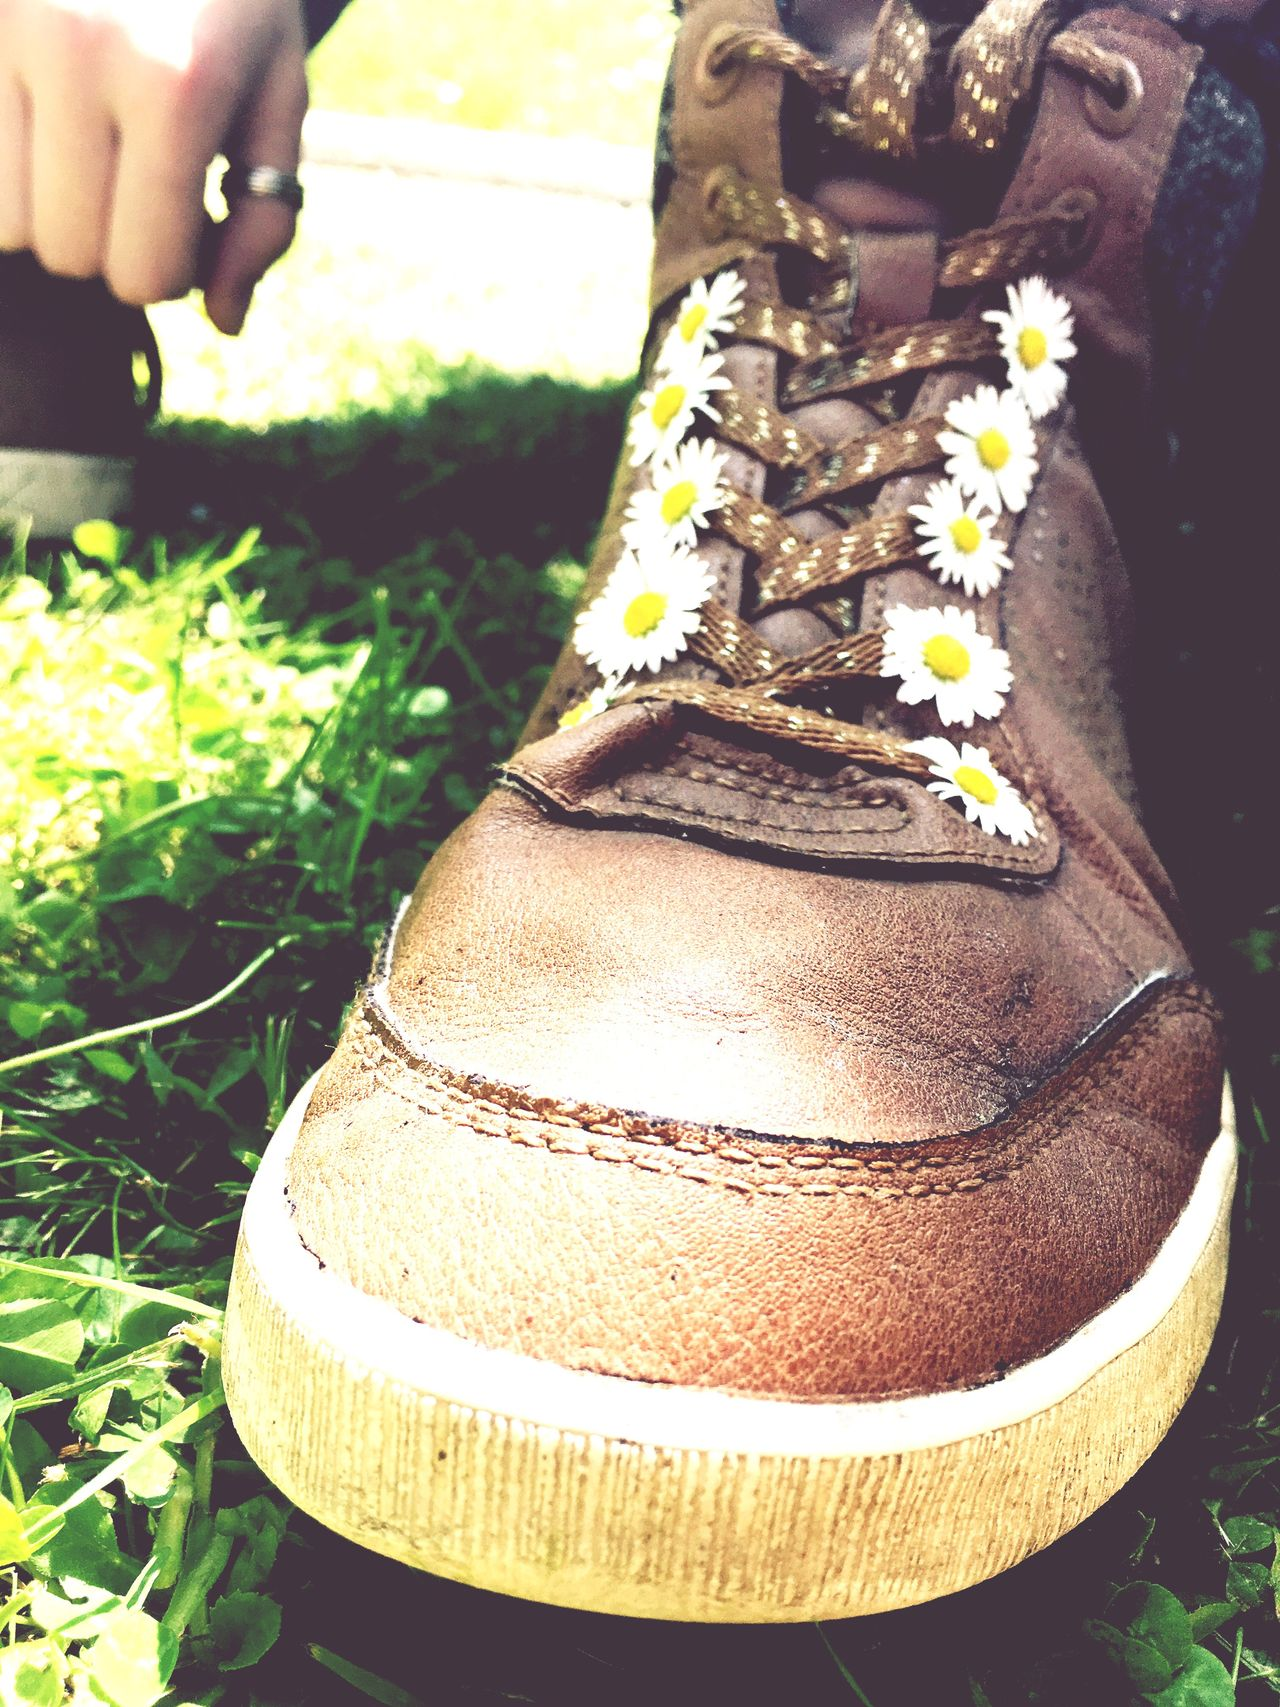 Chaussure Fleurs Flowers Paquerette Paquerettes Daisy Daysies Shoe Brownshoes Littleflower Littleflowers Vintage Photo Vintage Peace